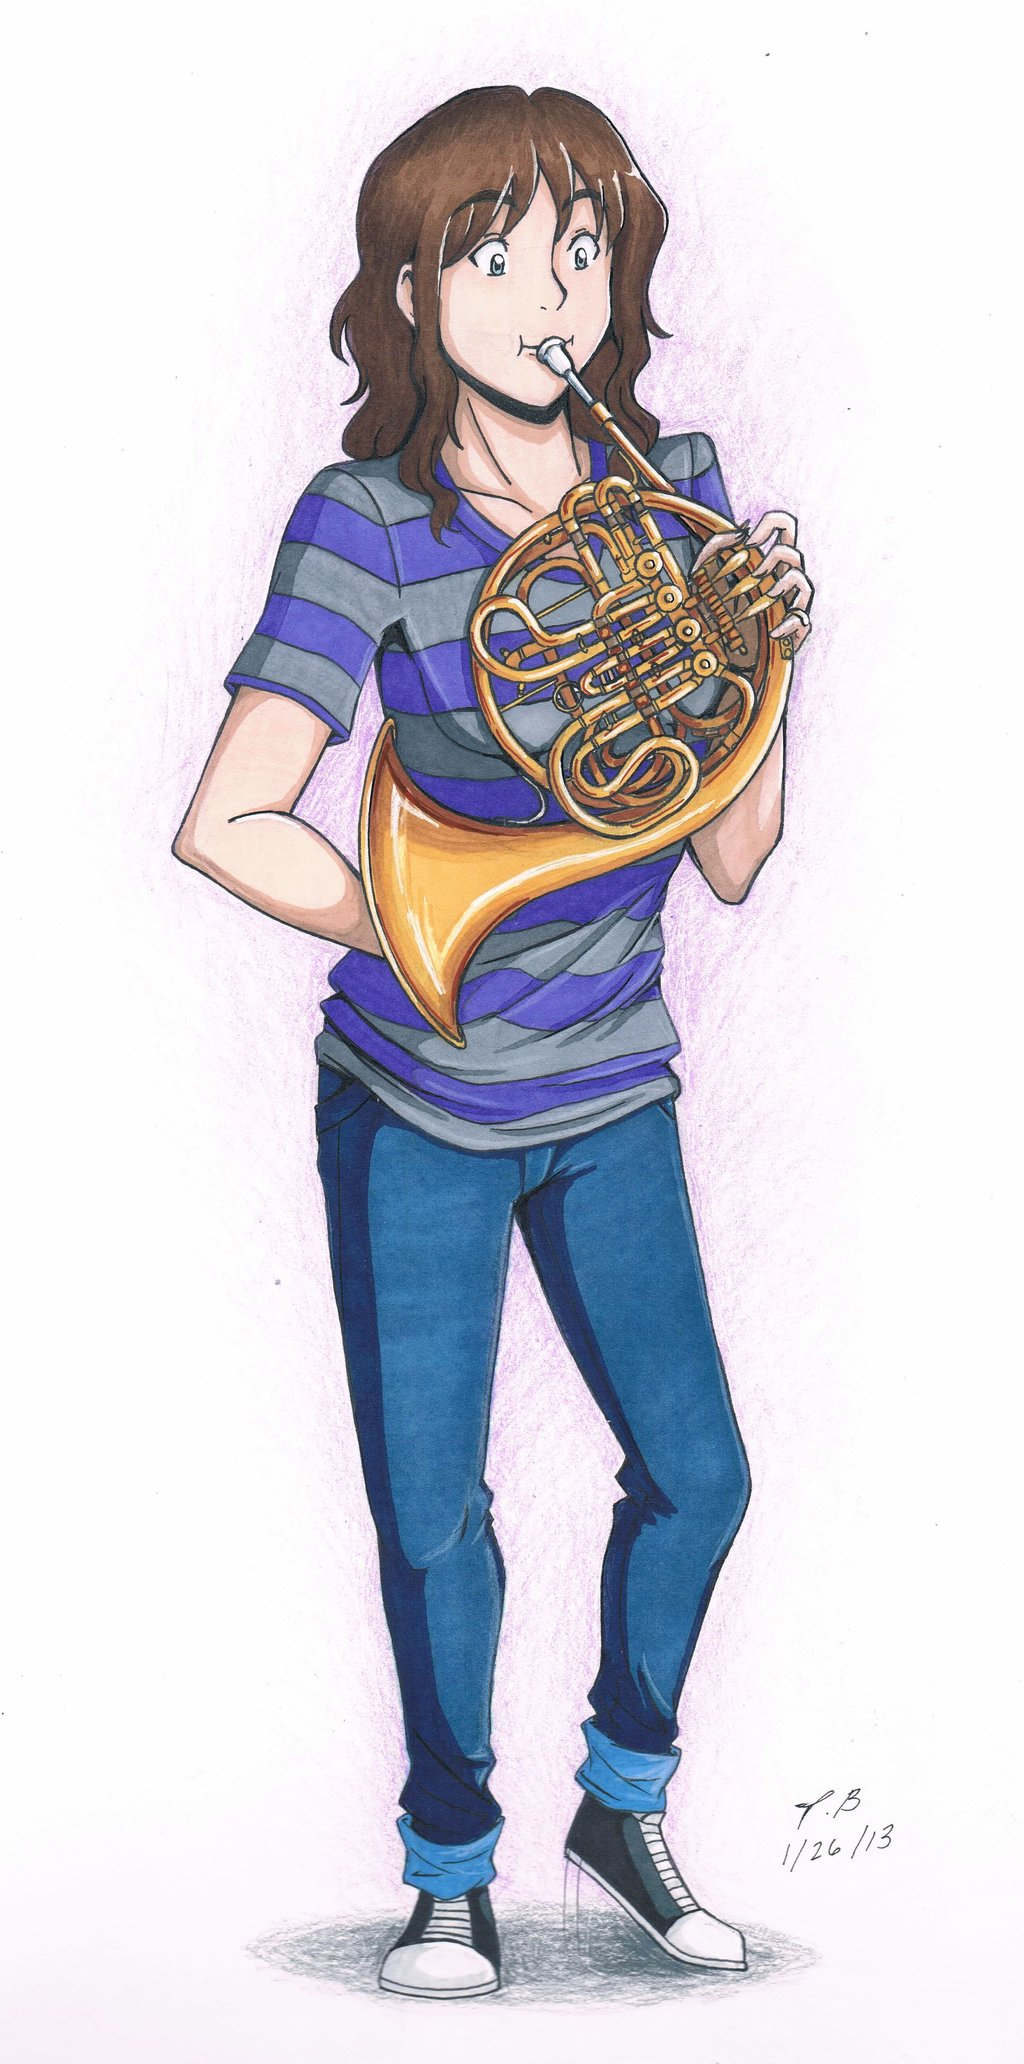 Player clipart french horn player. Drawing at getdrawings com